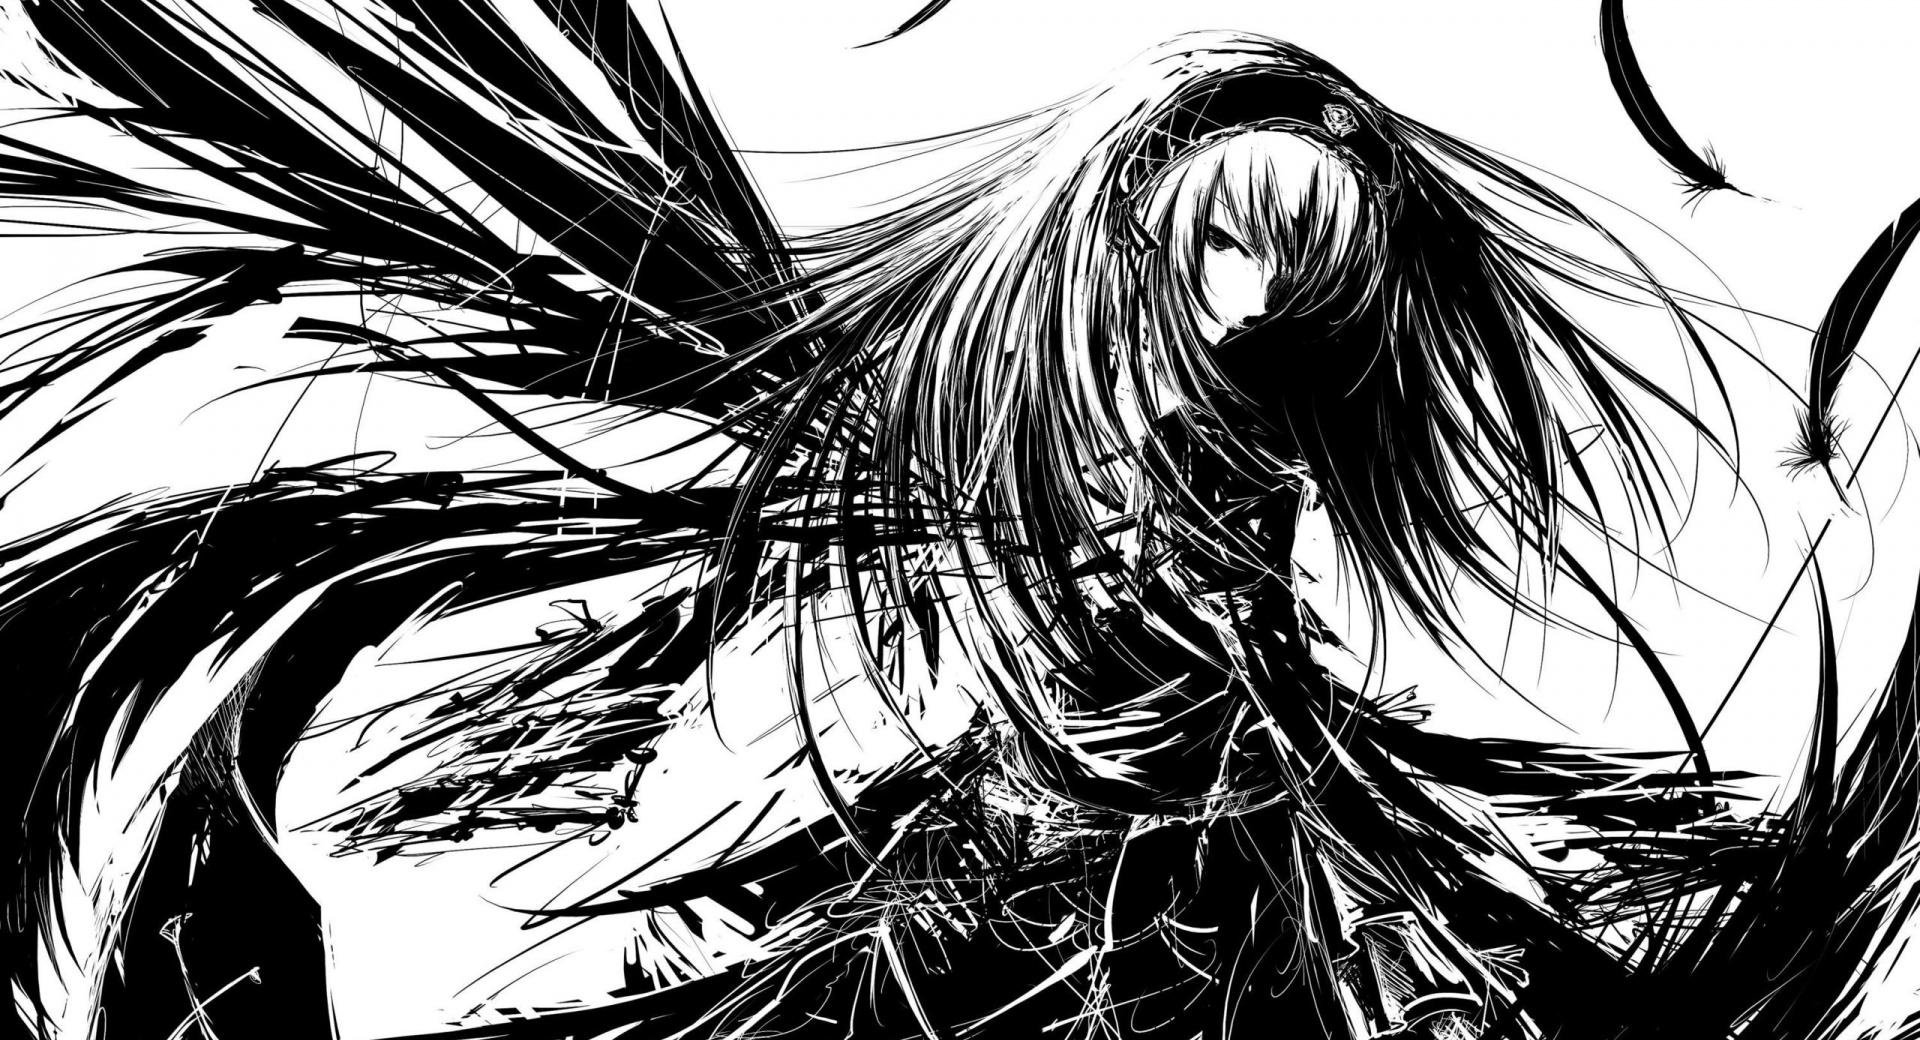 Rozen Maiden Suigintou wallpapers HD quality